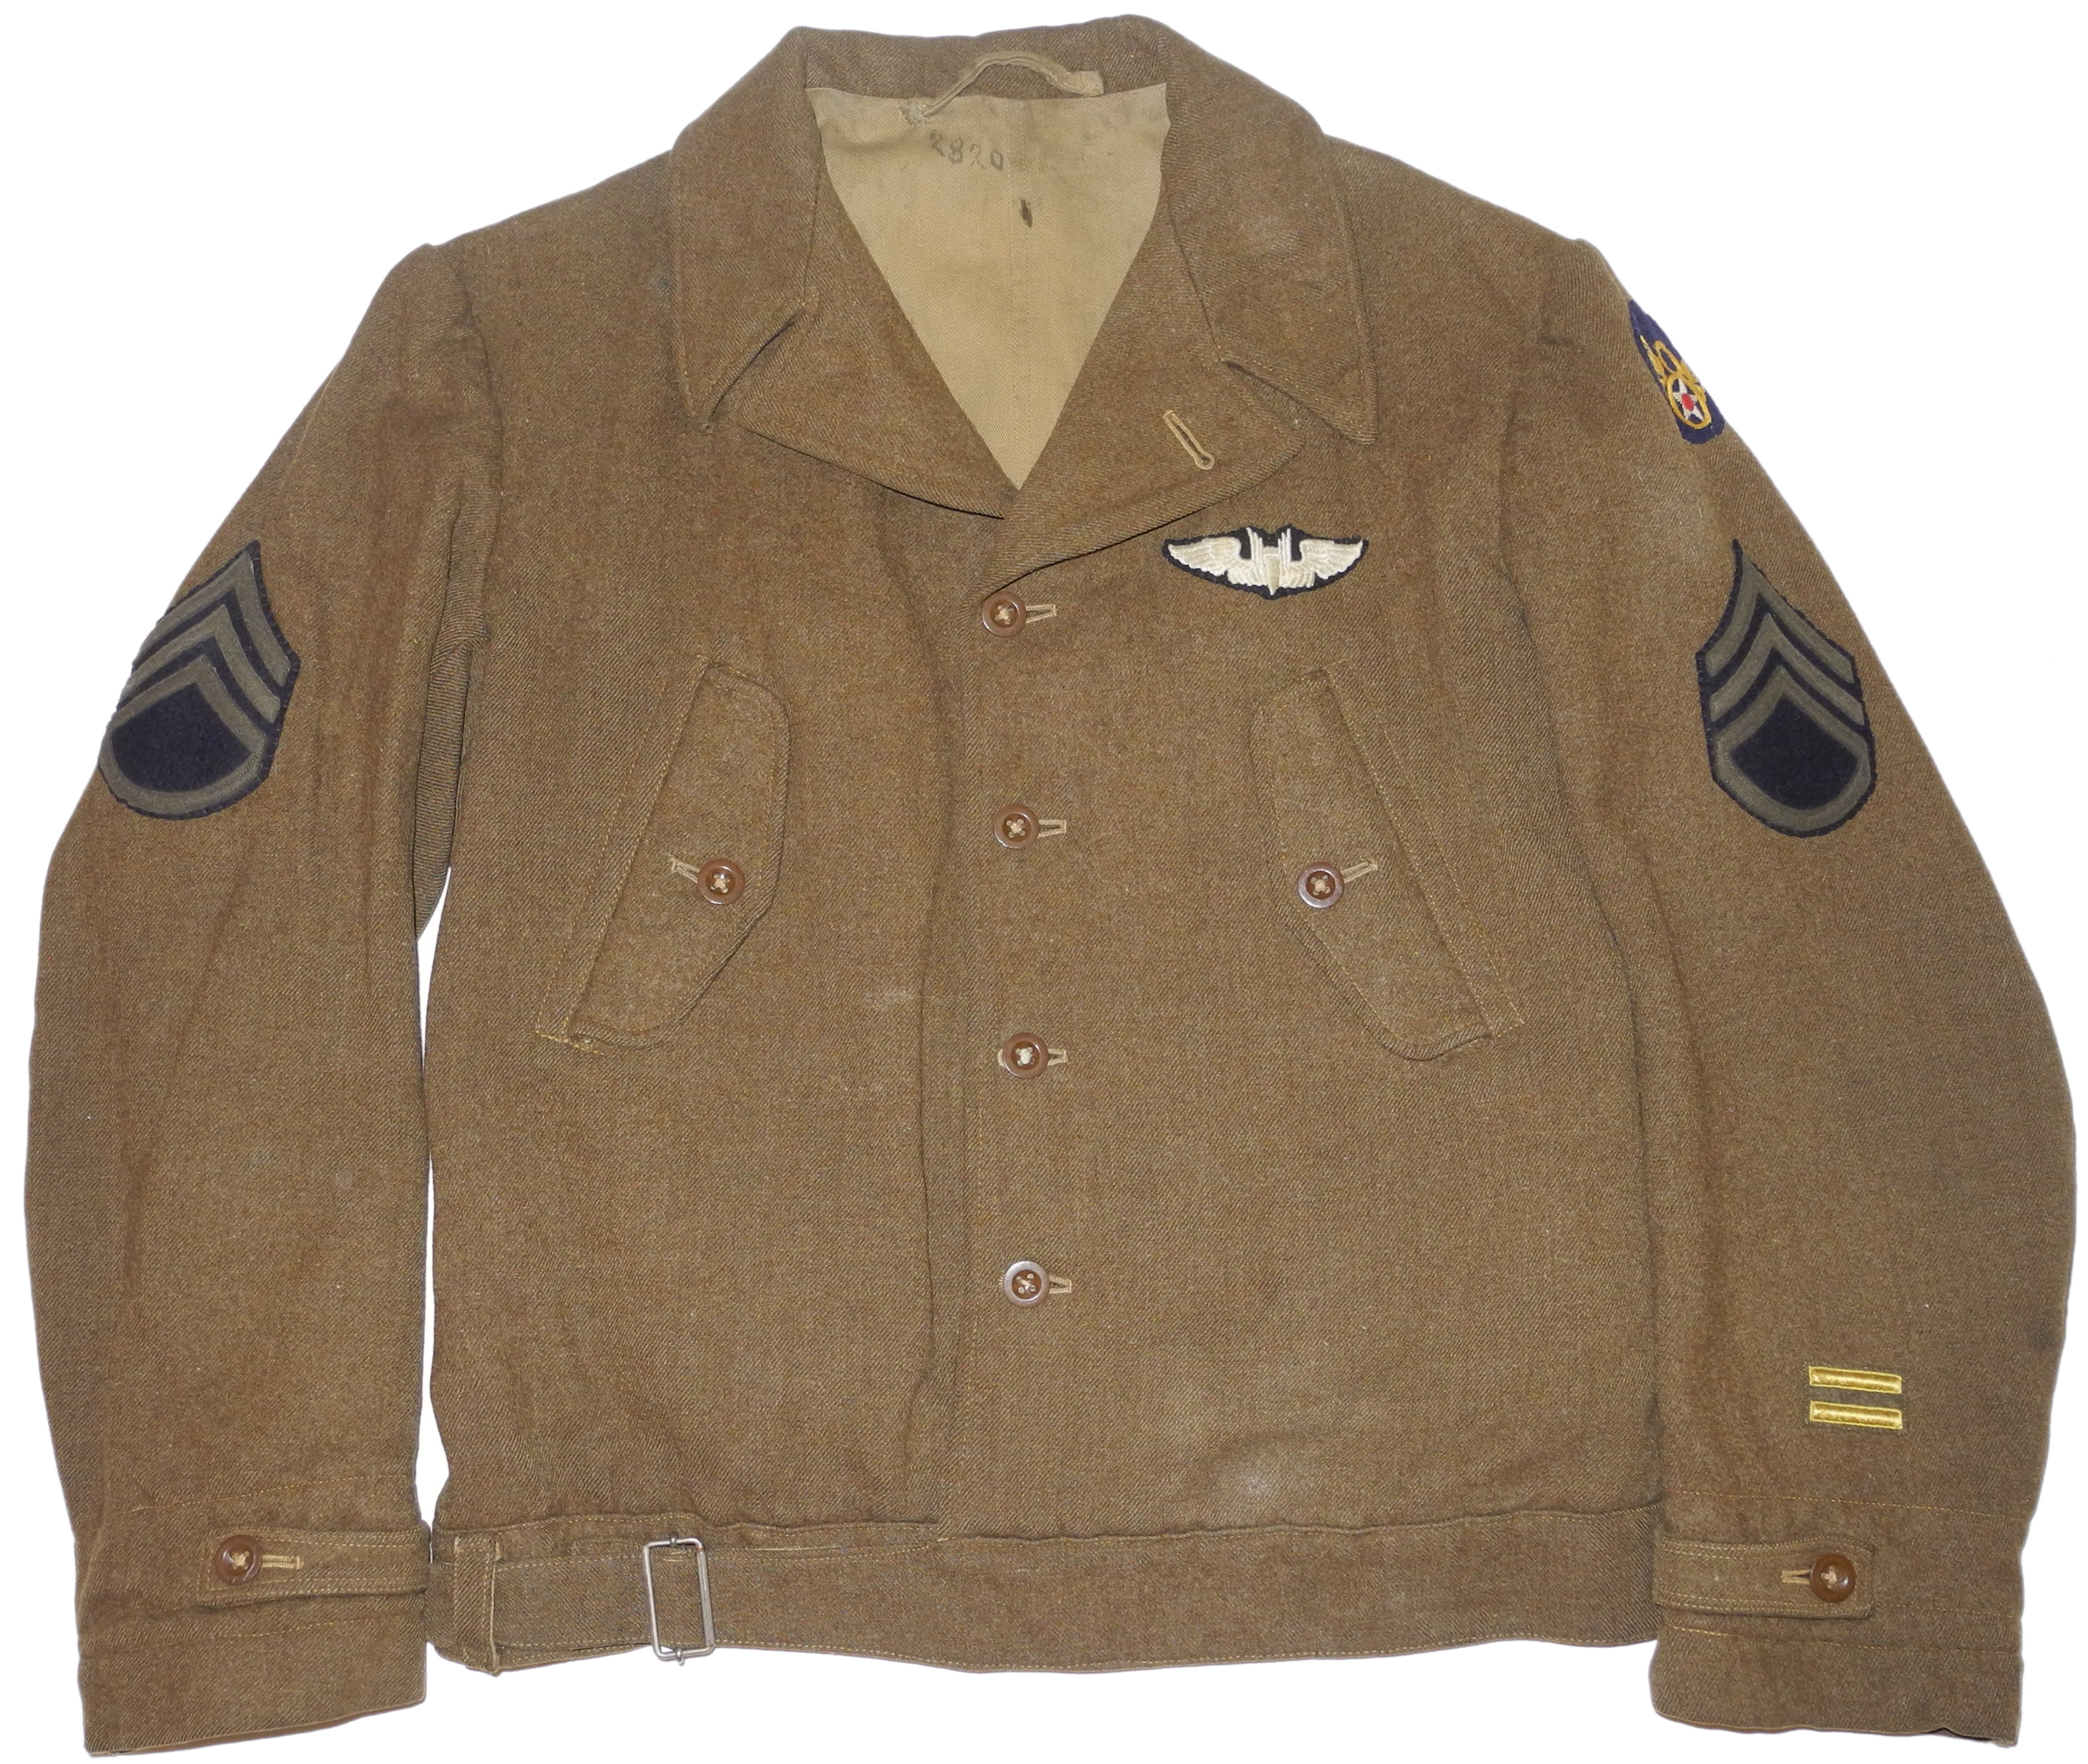 AAF British made ETO Field Jacket